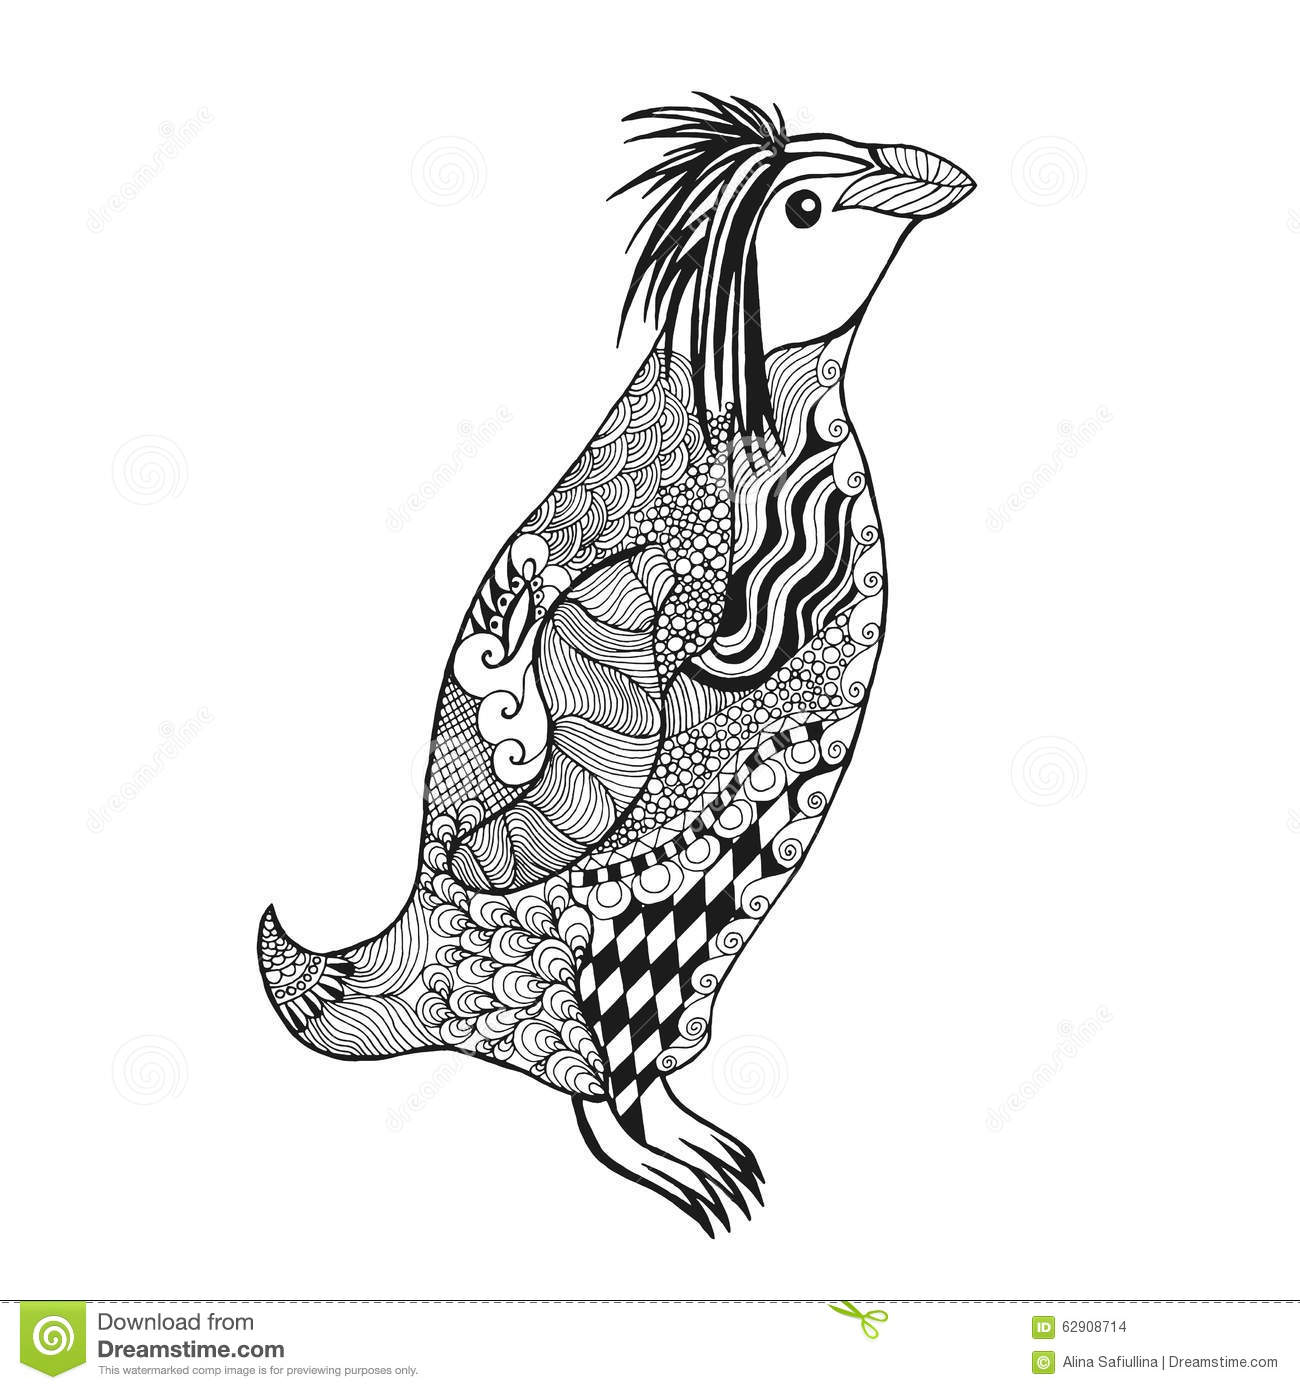 Zentangle stylized penguin stock vector illustration of for Penguin adult coloring pages